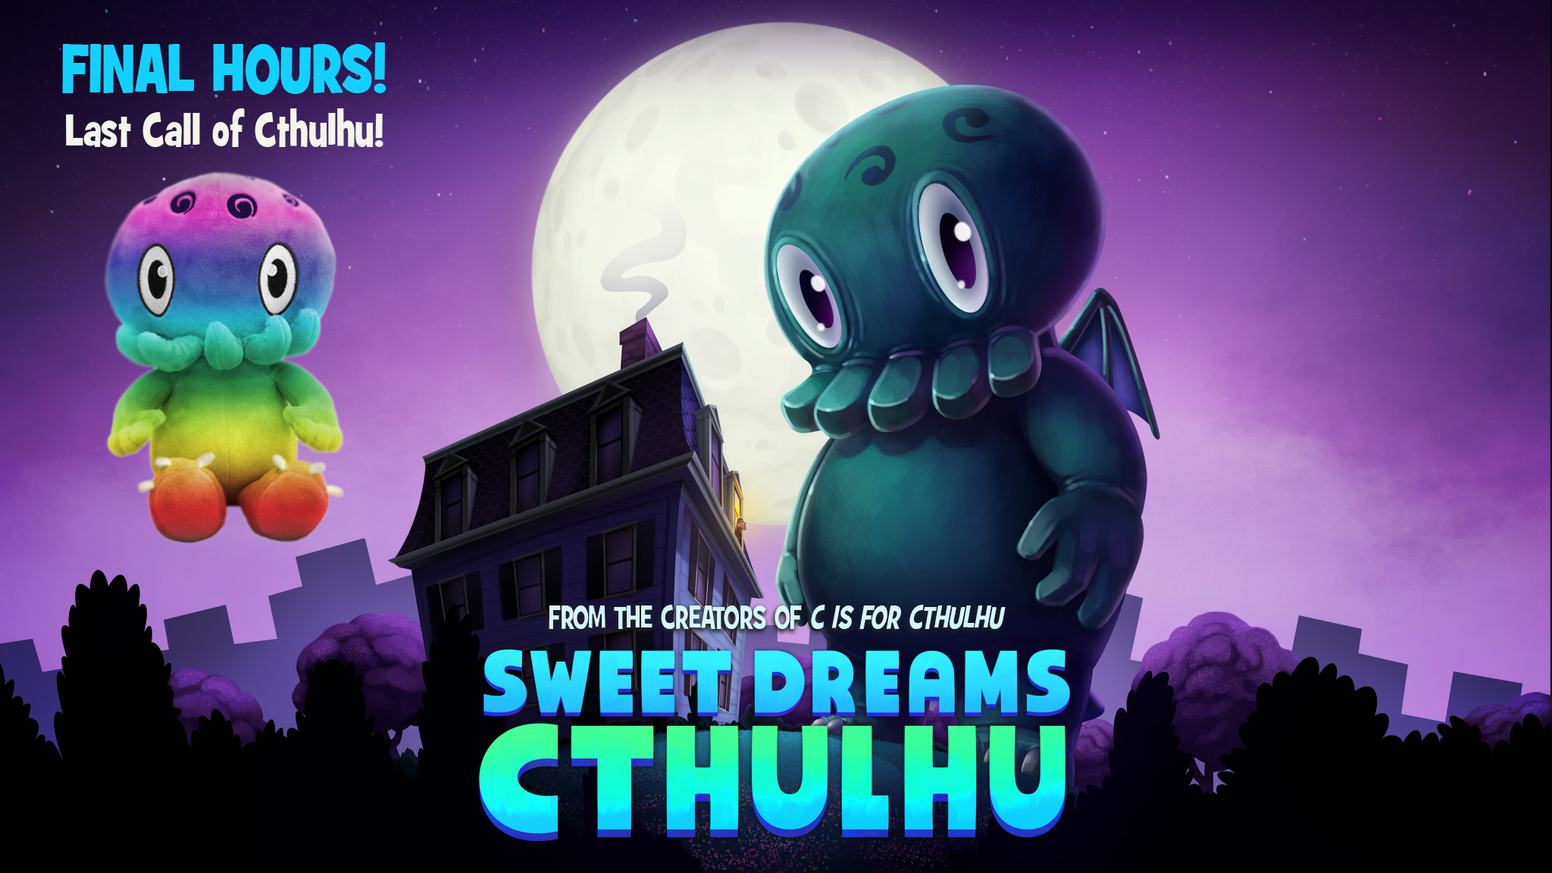 A new bedtime story from the creators of C IS FOR CTHULHU, sure to help Lovecraft fans & cultists of all ages drift into dreamland.